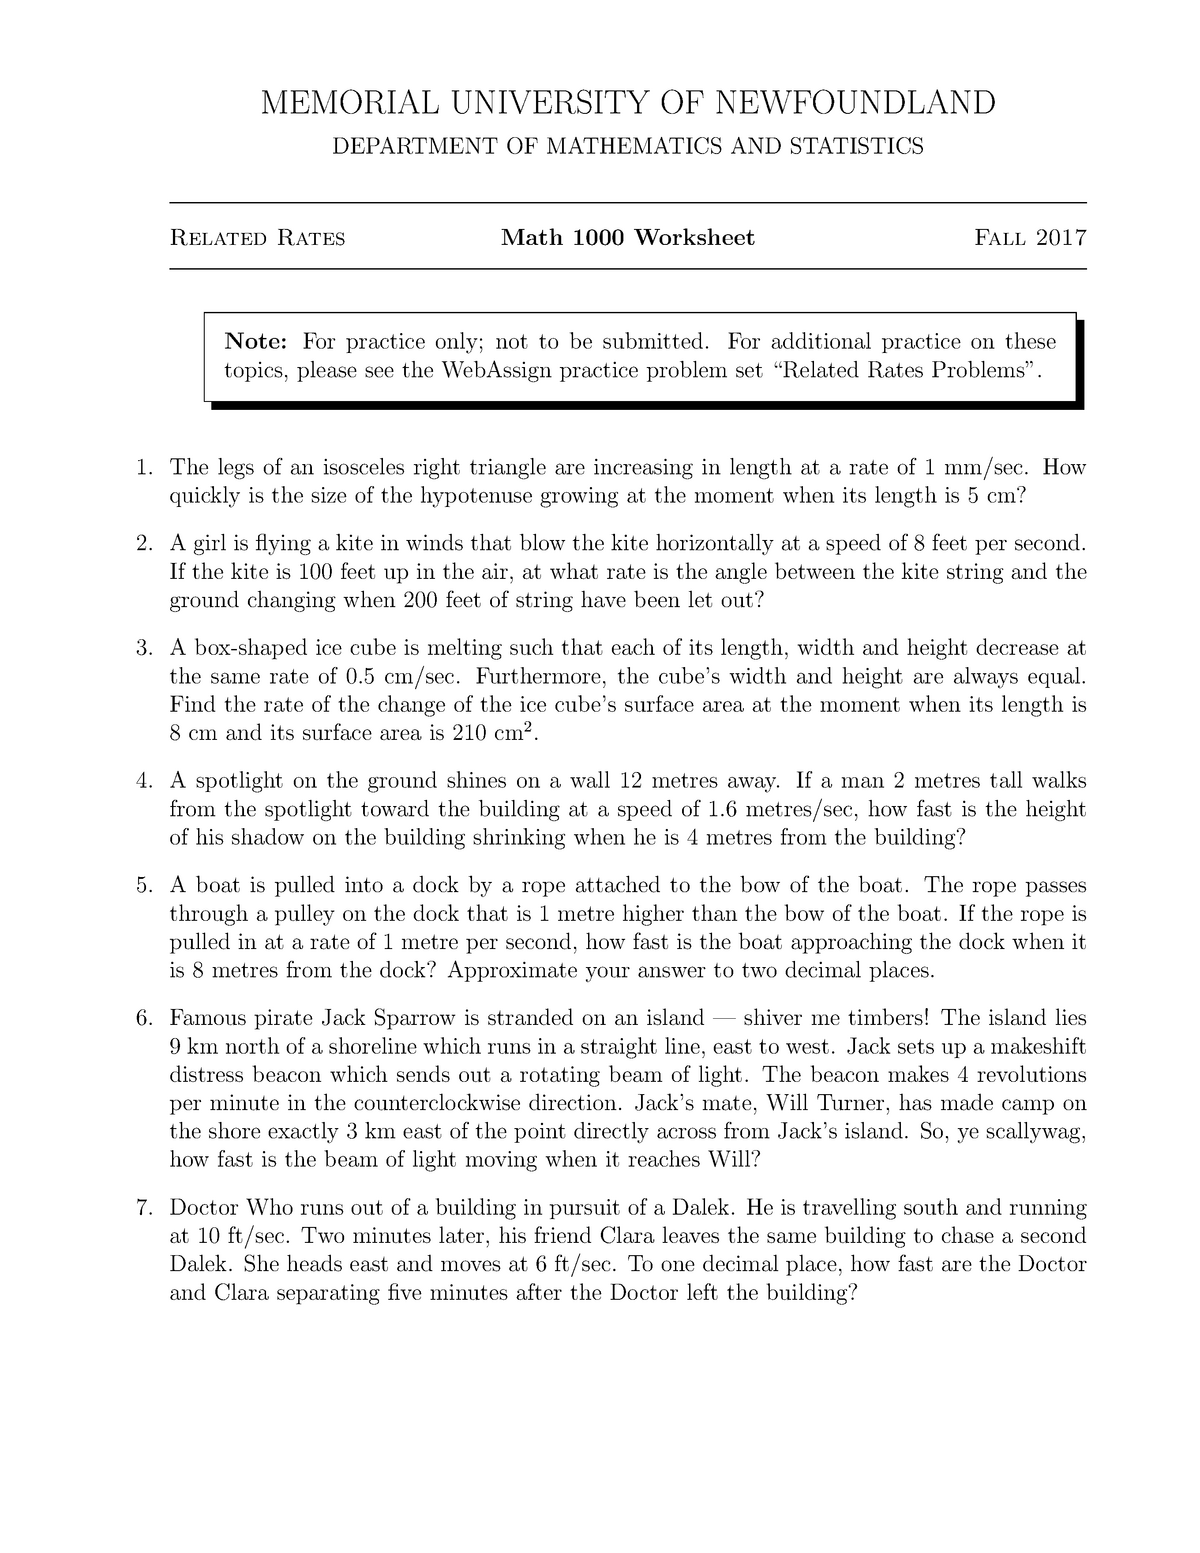 Worksheet on Related Rates Problems - Math 1000 Calculus I